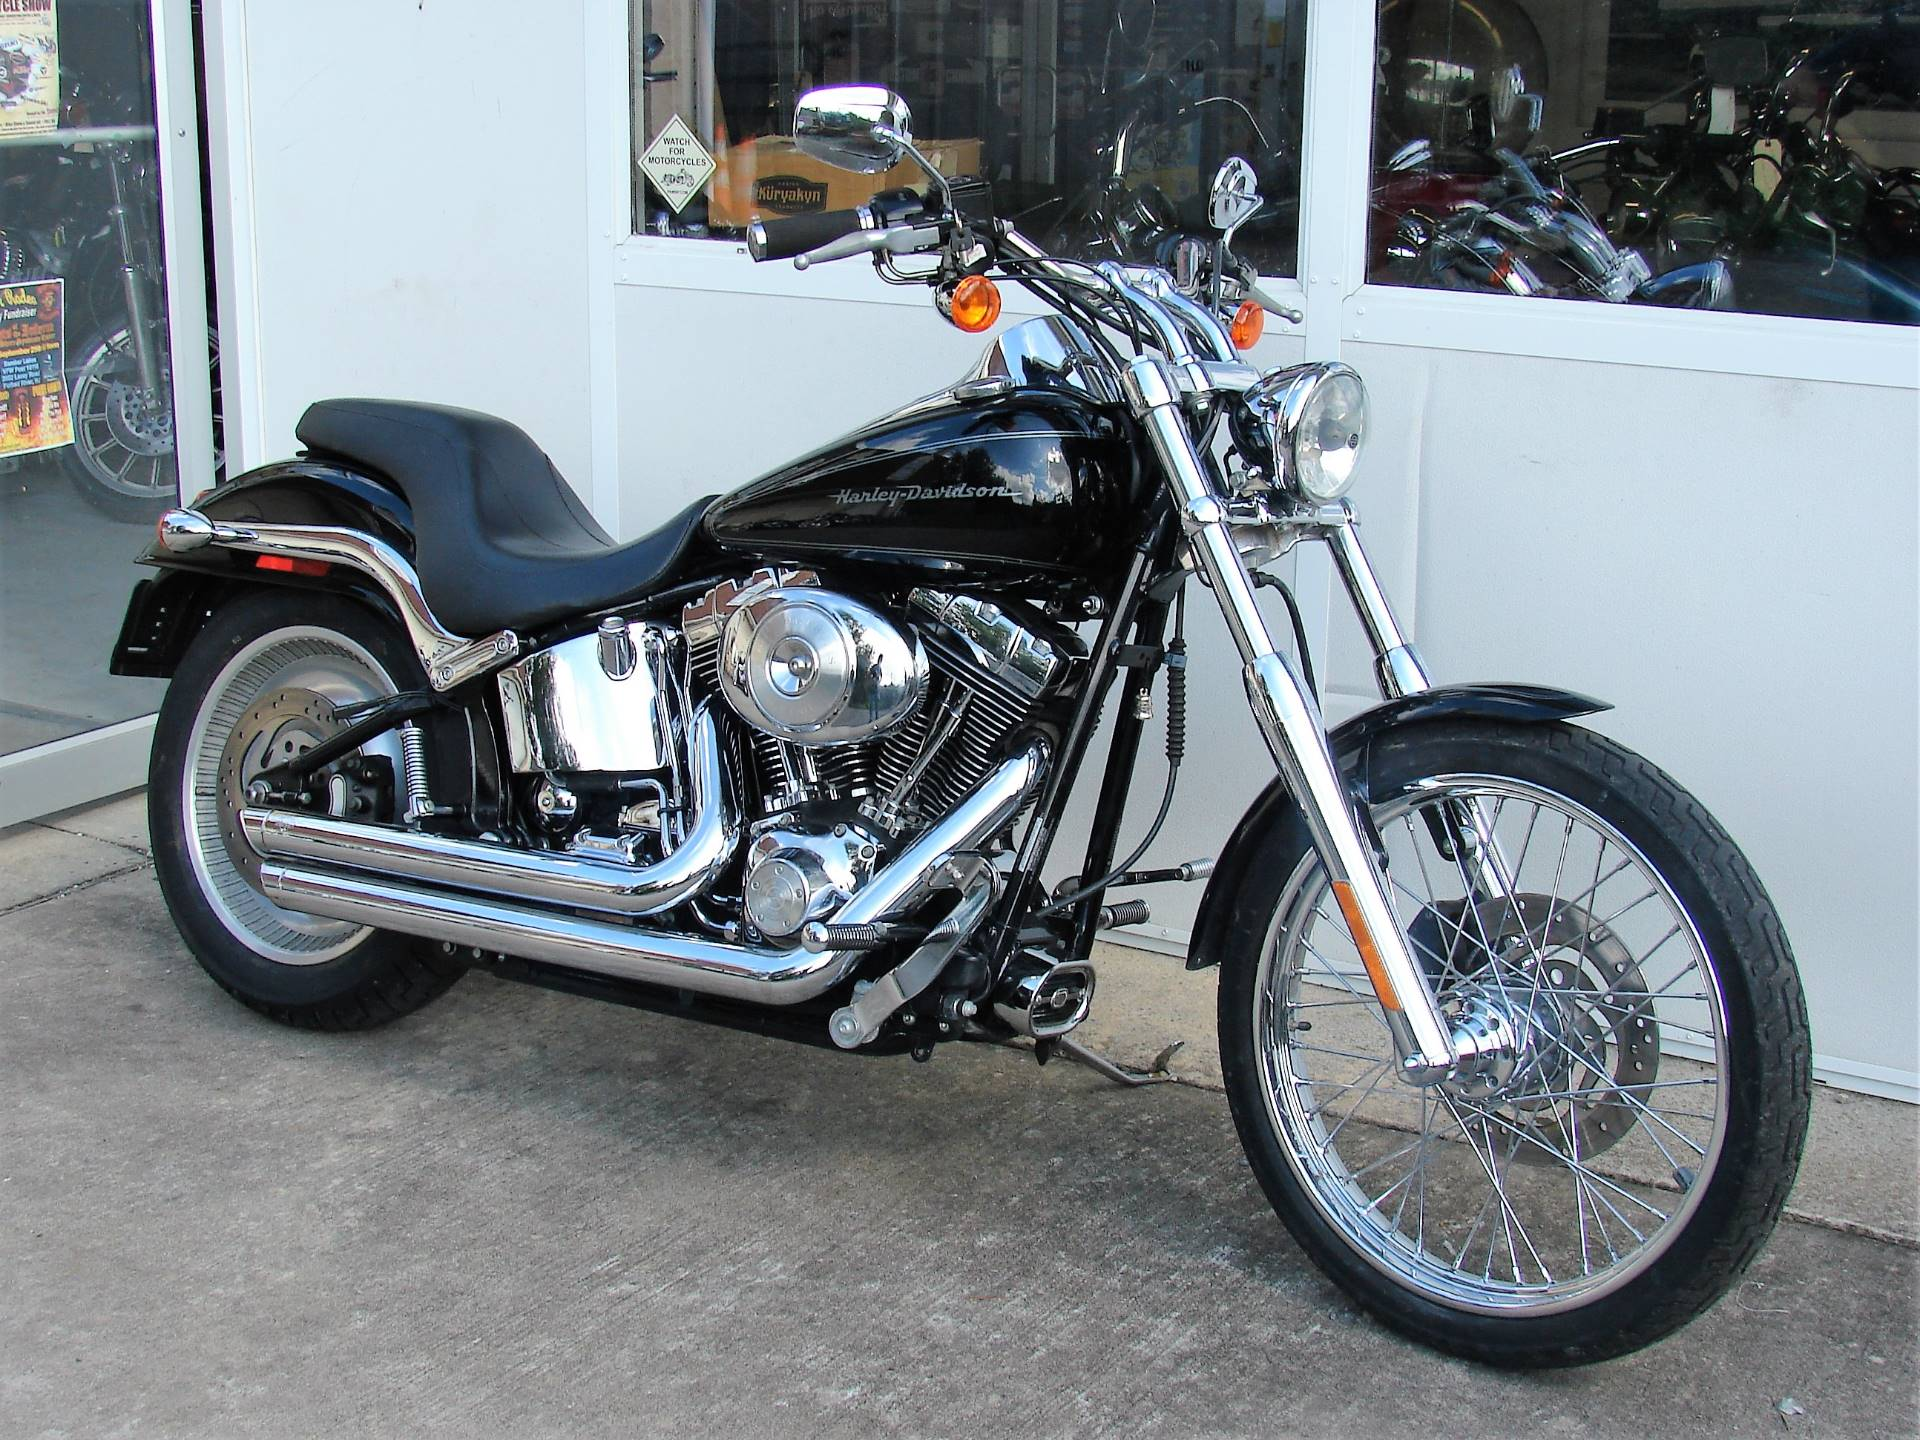 2005 Harley-Davidson Harley Davidson  FXSTD/I  Softail Deuce in Williamstown, New Jersey